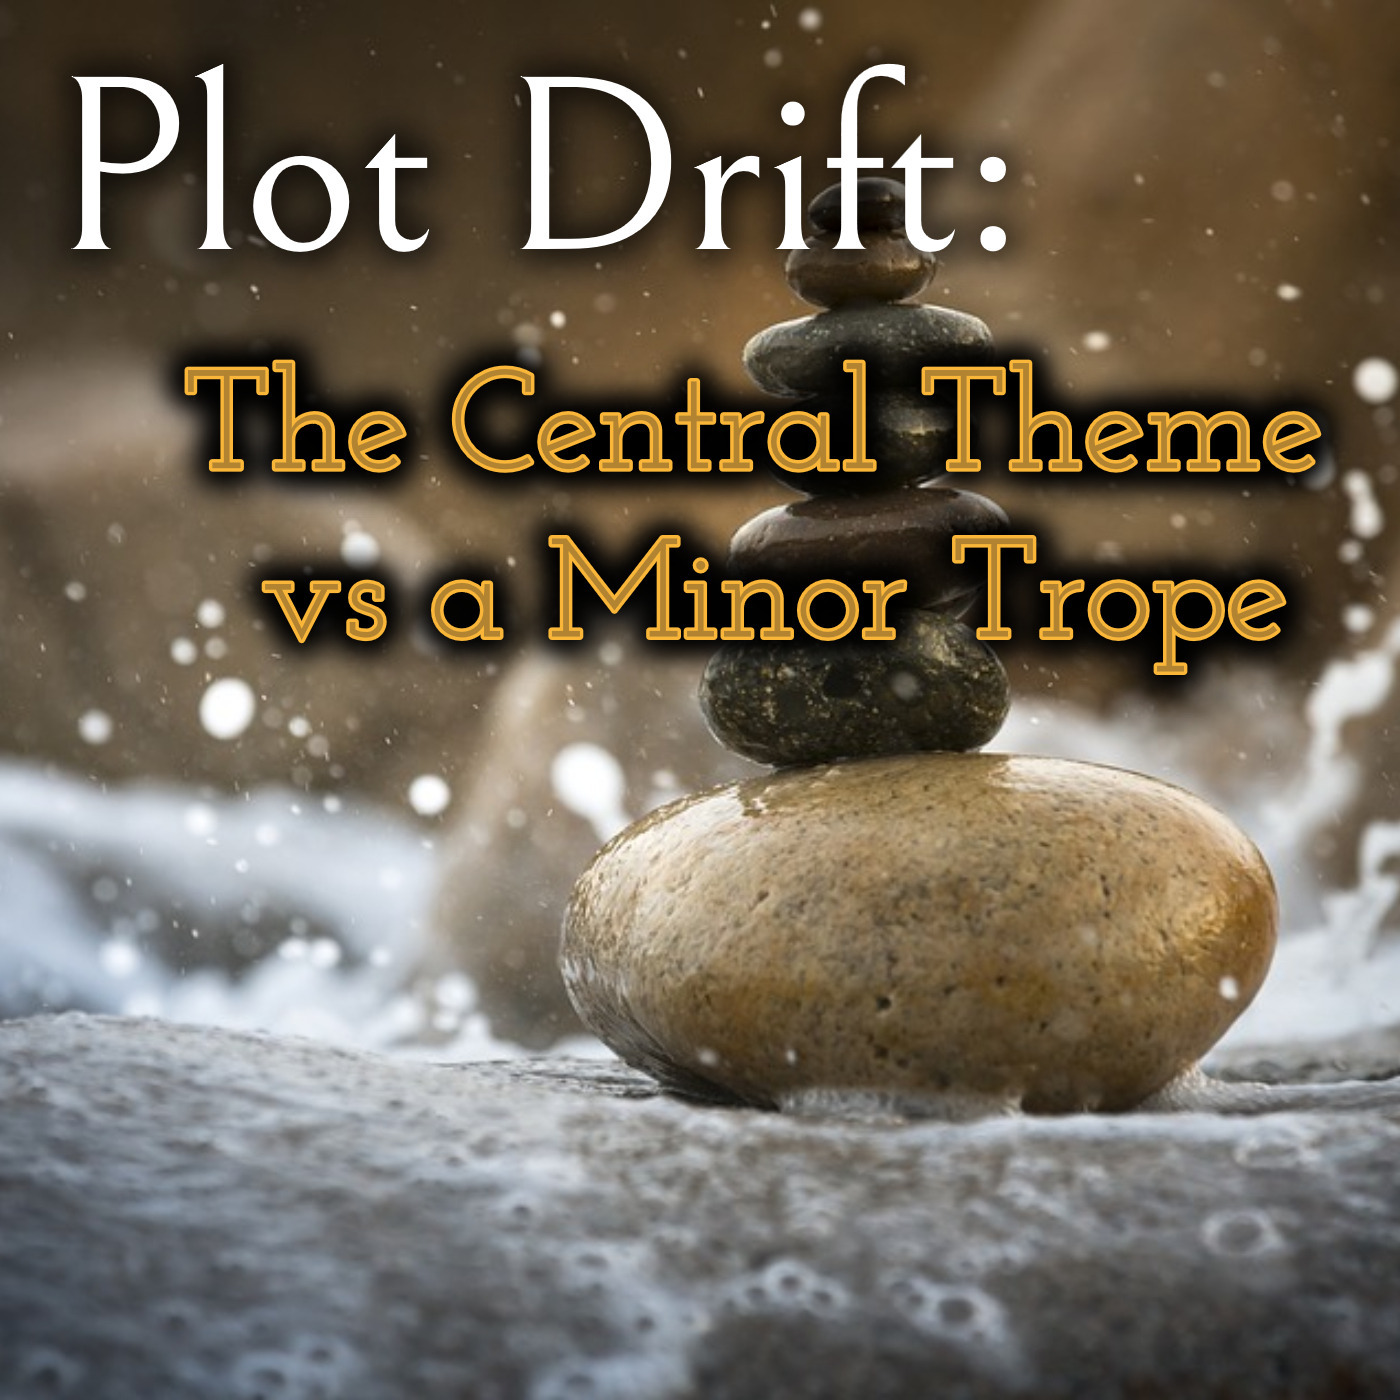 Plot Drift - Central Theme Vs a Minor Trope